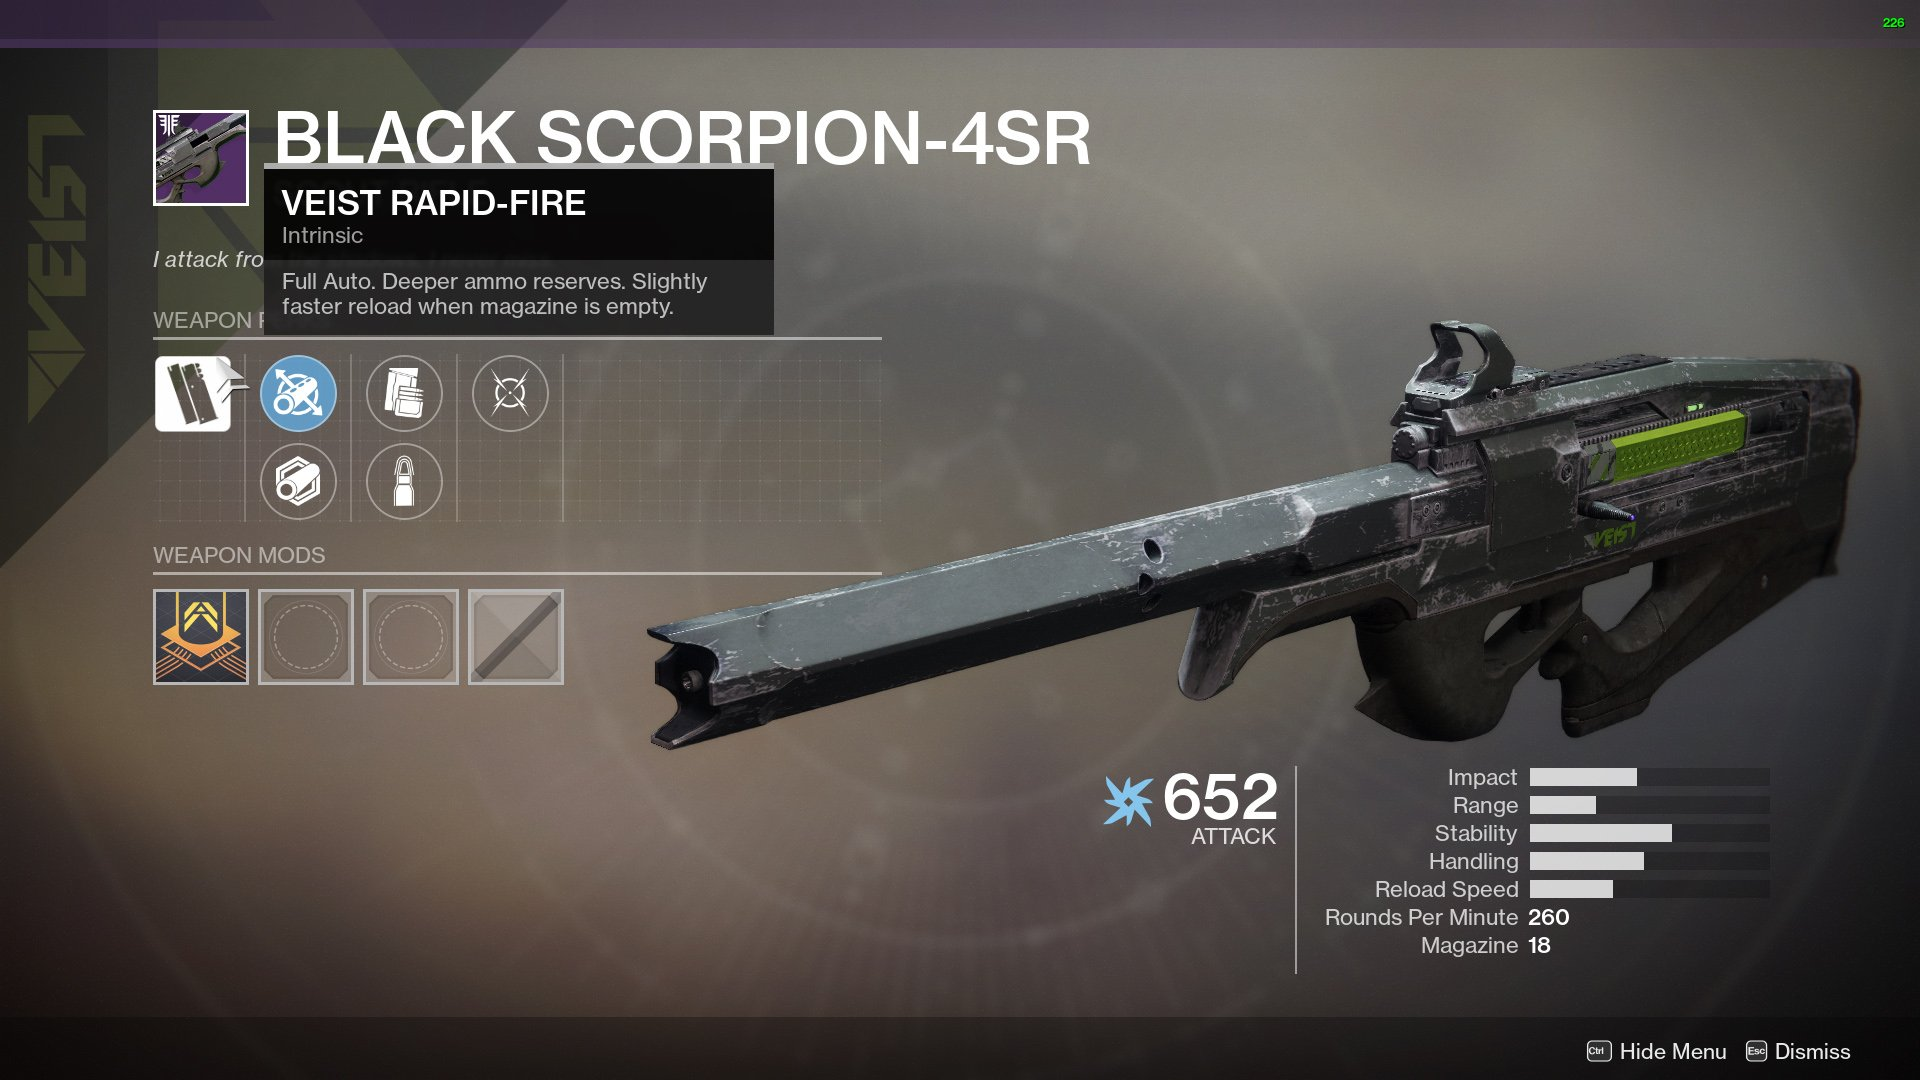 Black Scorpion-4SR